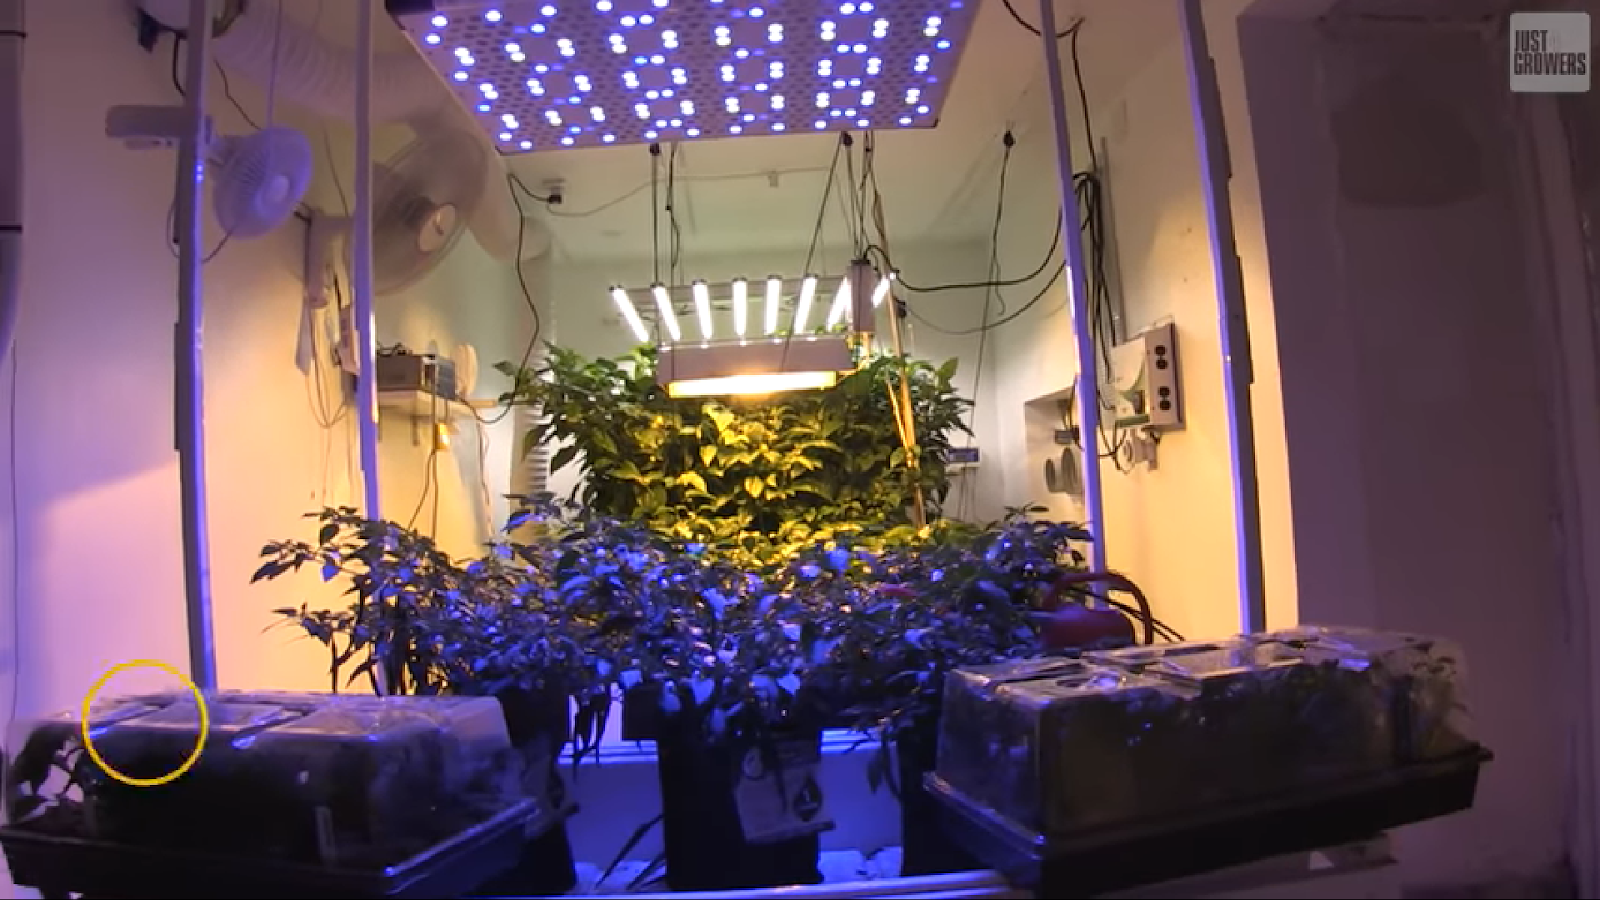 Grow lights and fans